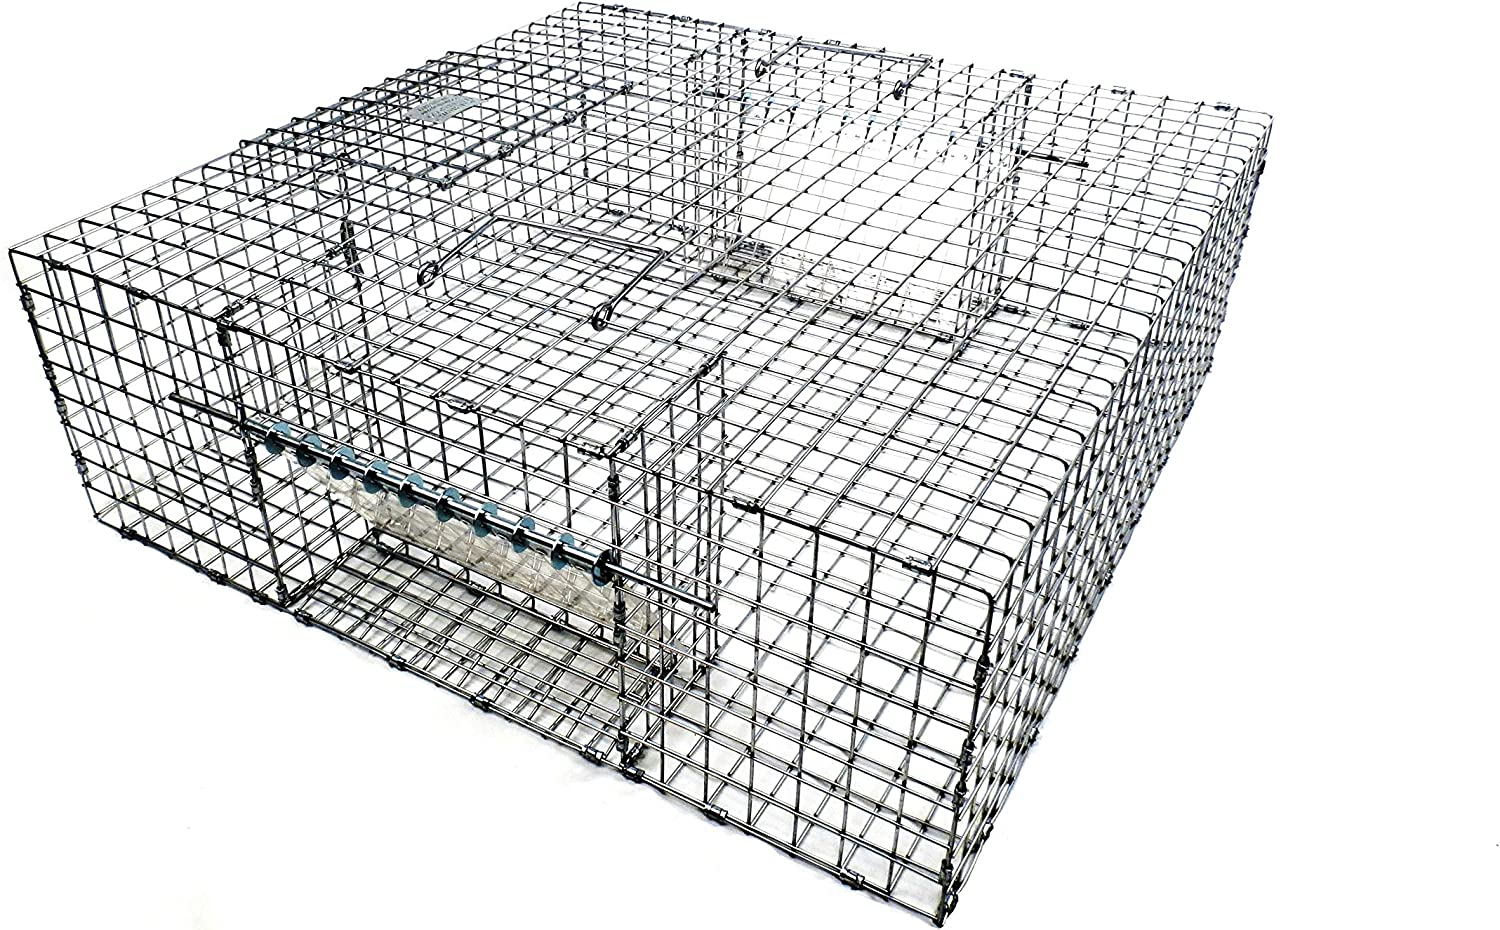 Tomahawk Model 420 - Our shop most popular Bullfrog Repeating Trap Colorado Springs Mall